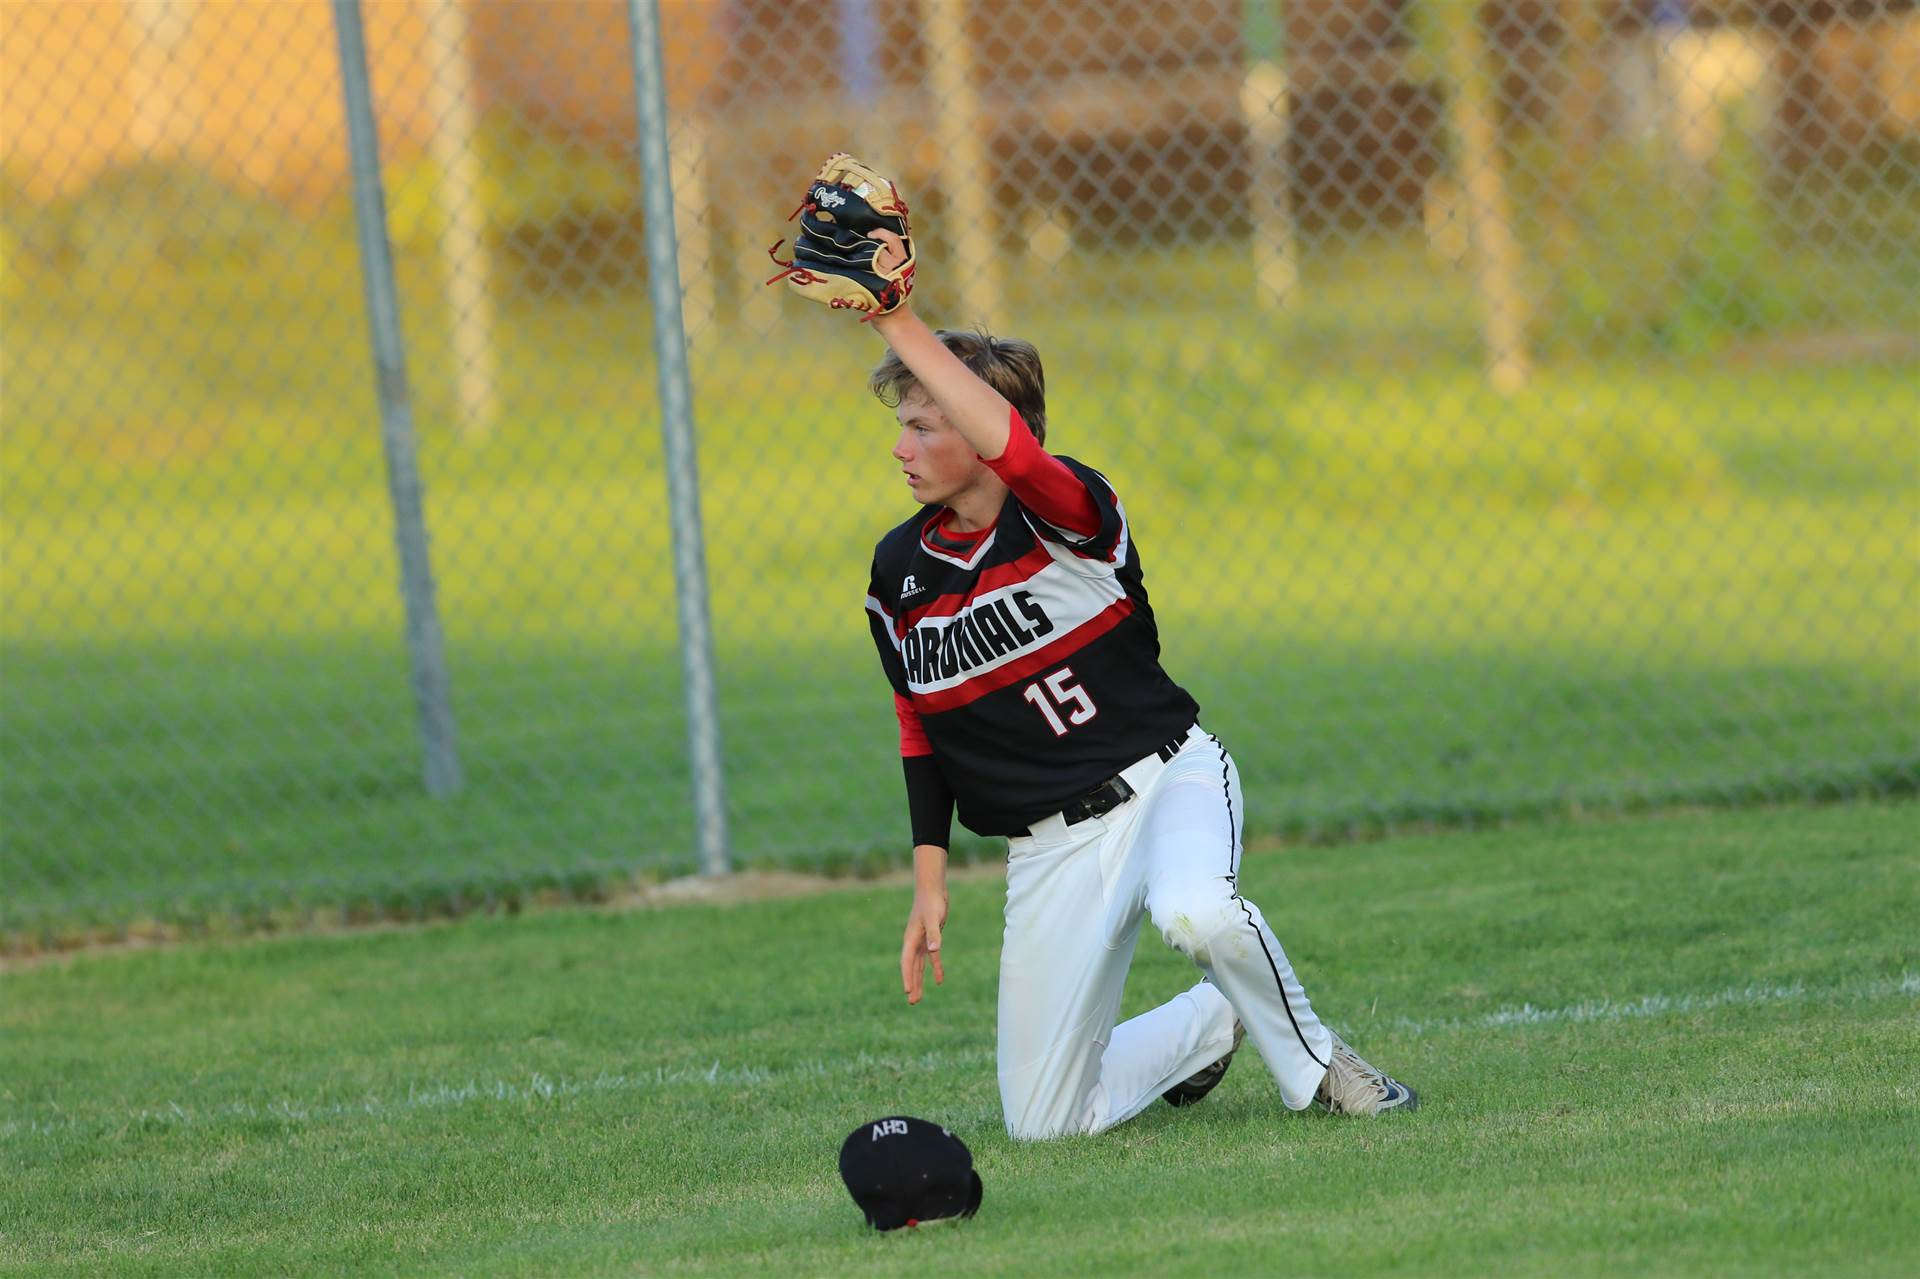 Baseball player making a catch in the outfield